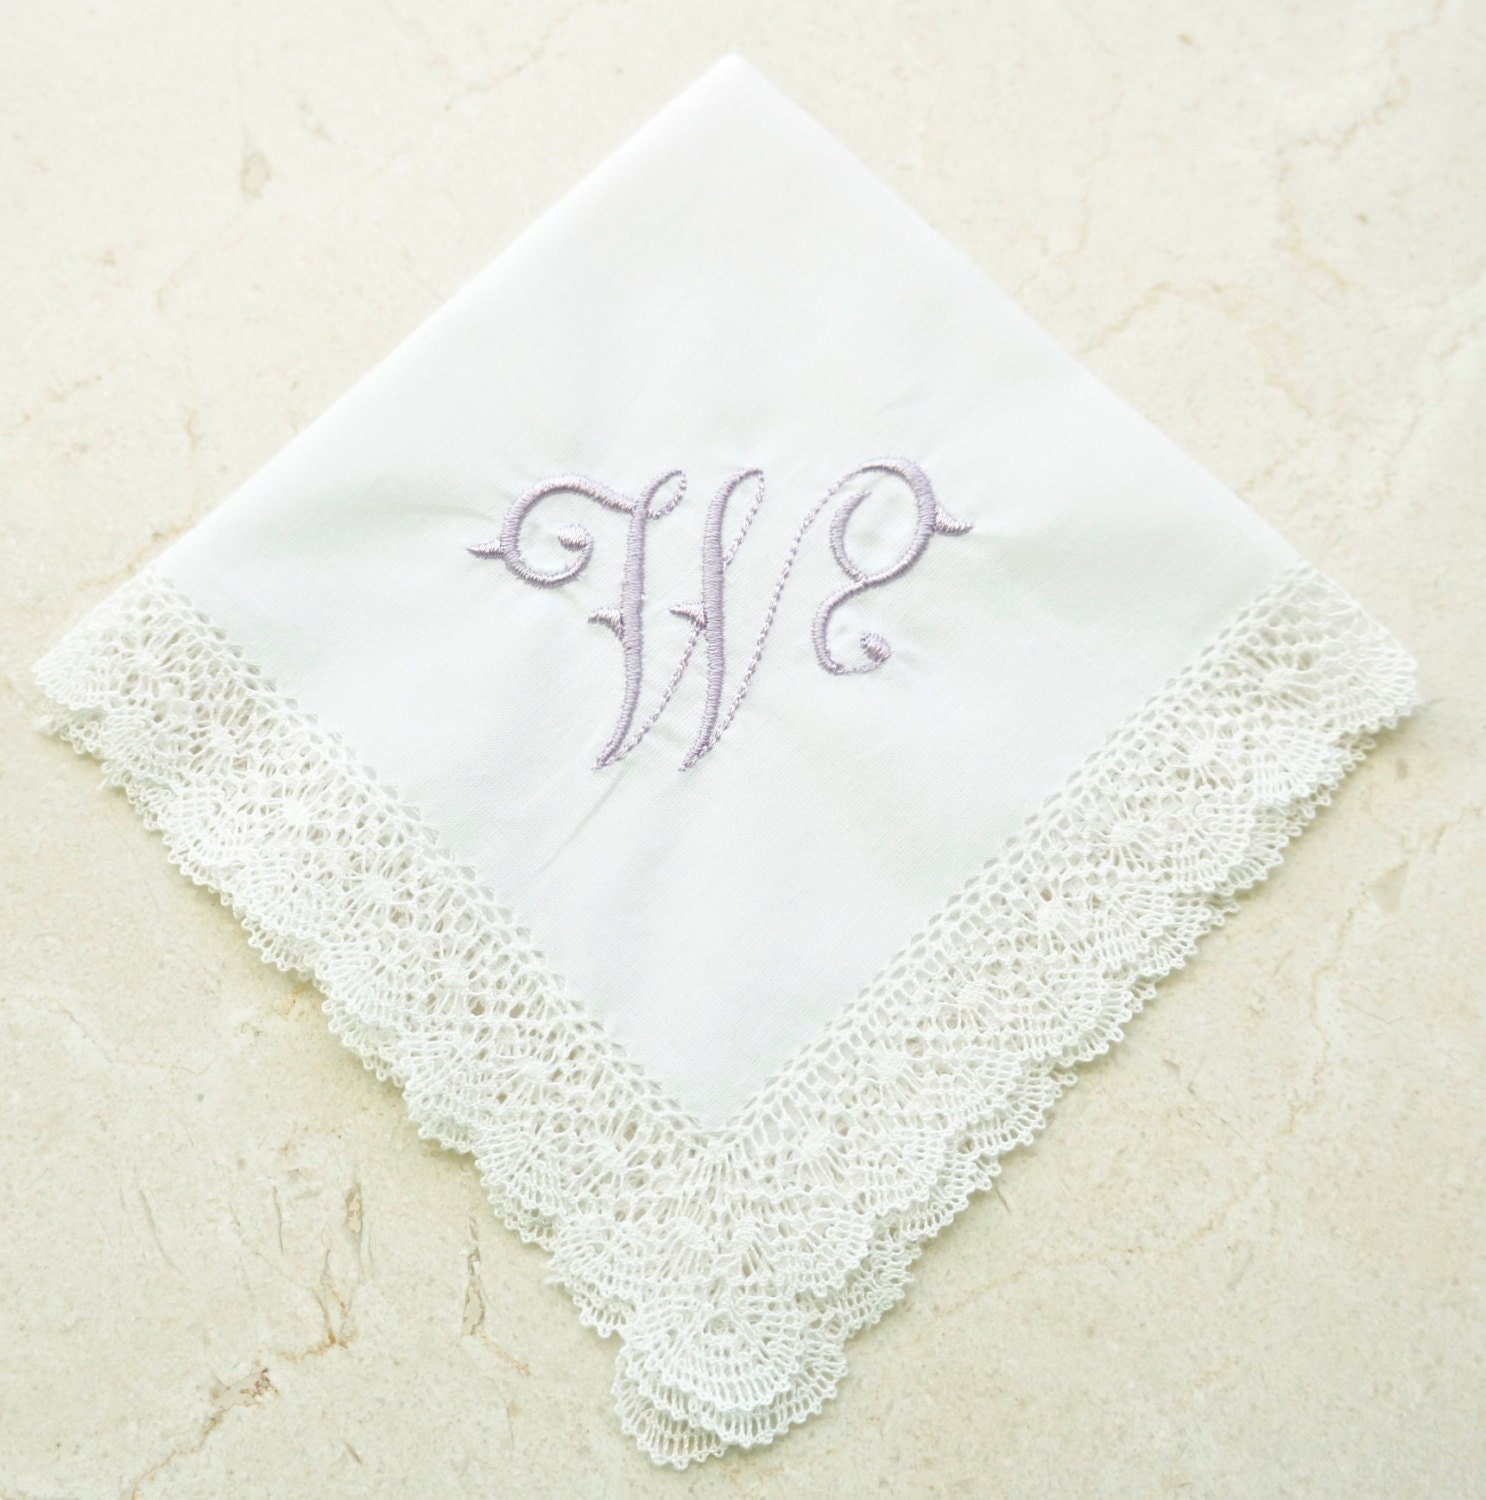 Hand Made Bobbin Lace Embroidered Handkerchief, Monogrammed Handkerchief,  Personalized Bridal Handkerchief, Wedding Handkerchief